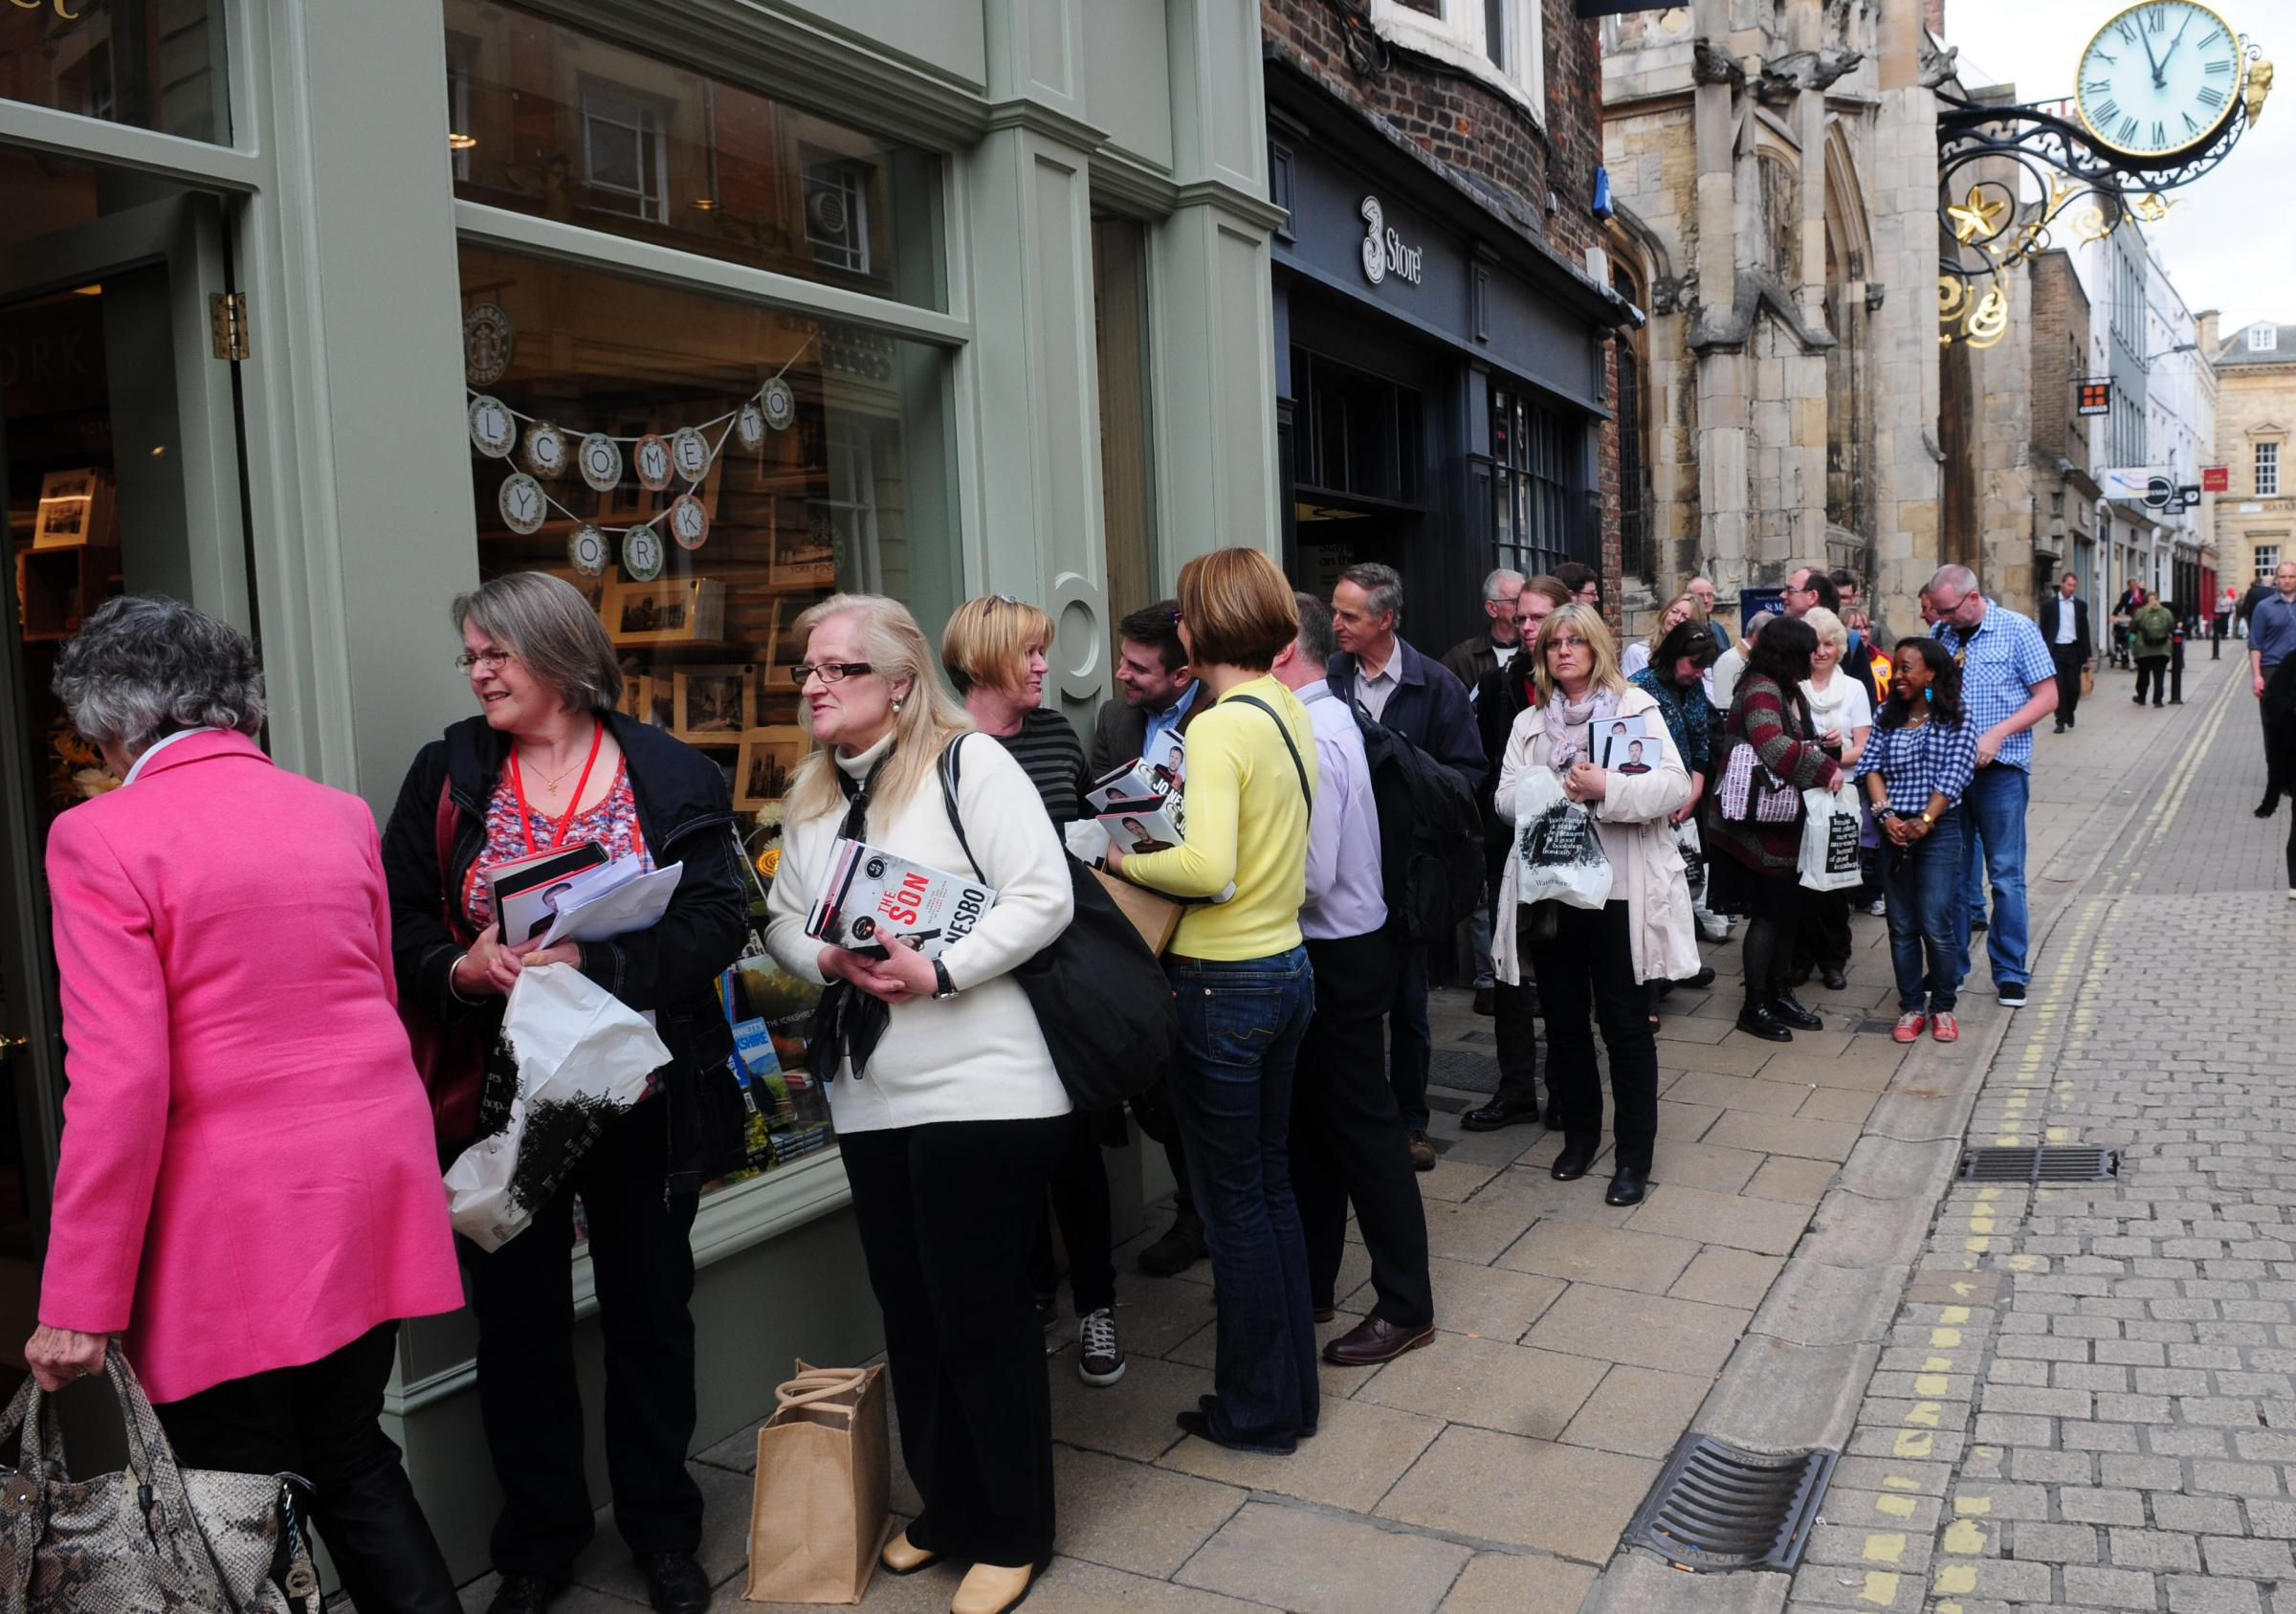 Jo Nesbo fans flock to book signing